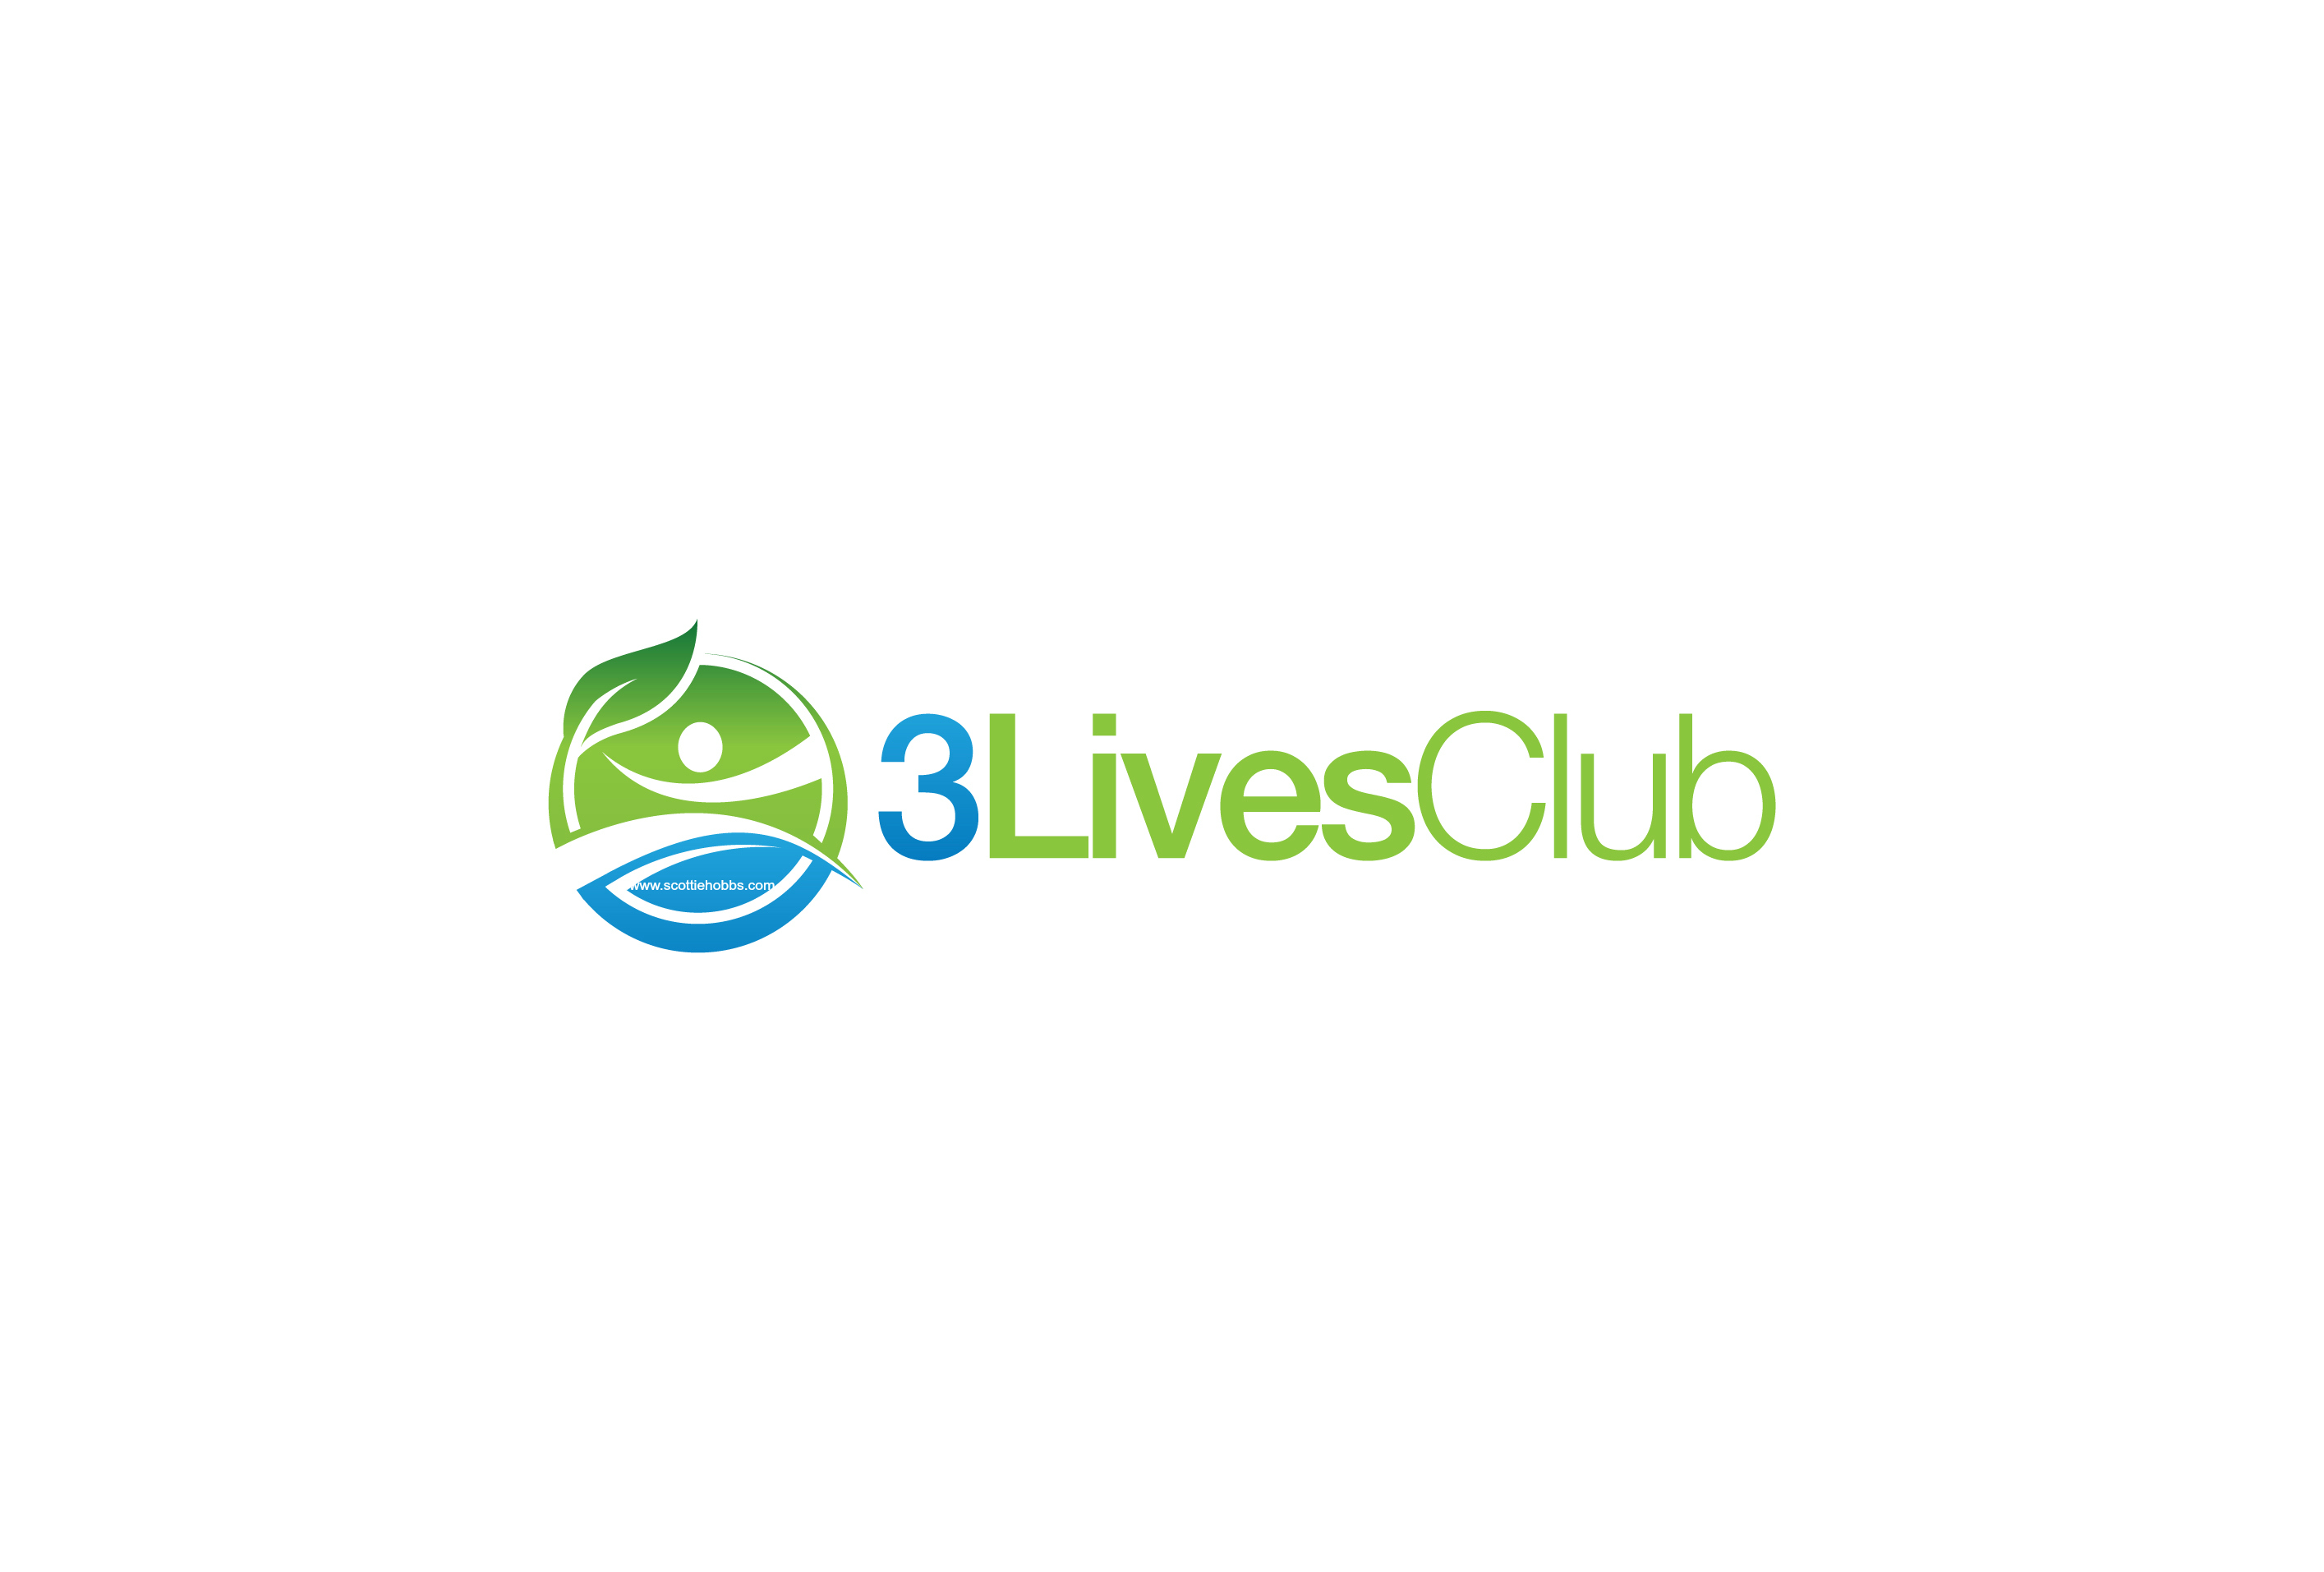 How to Hit Success Club 5